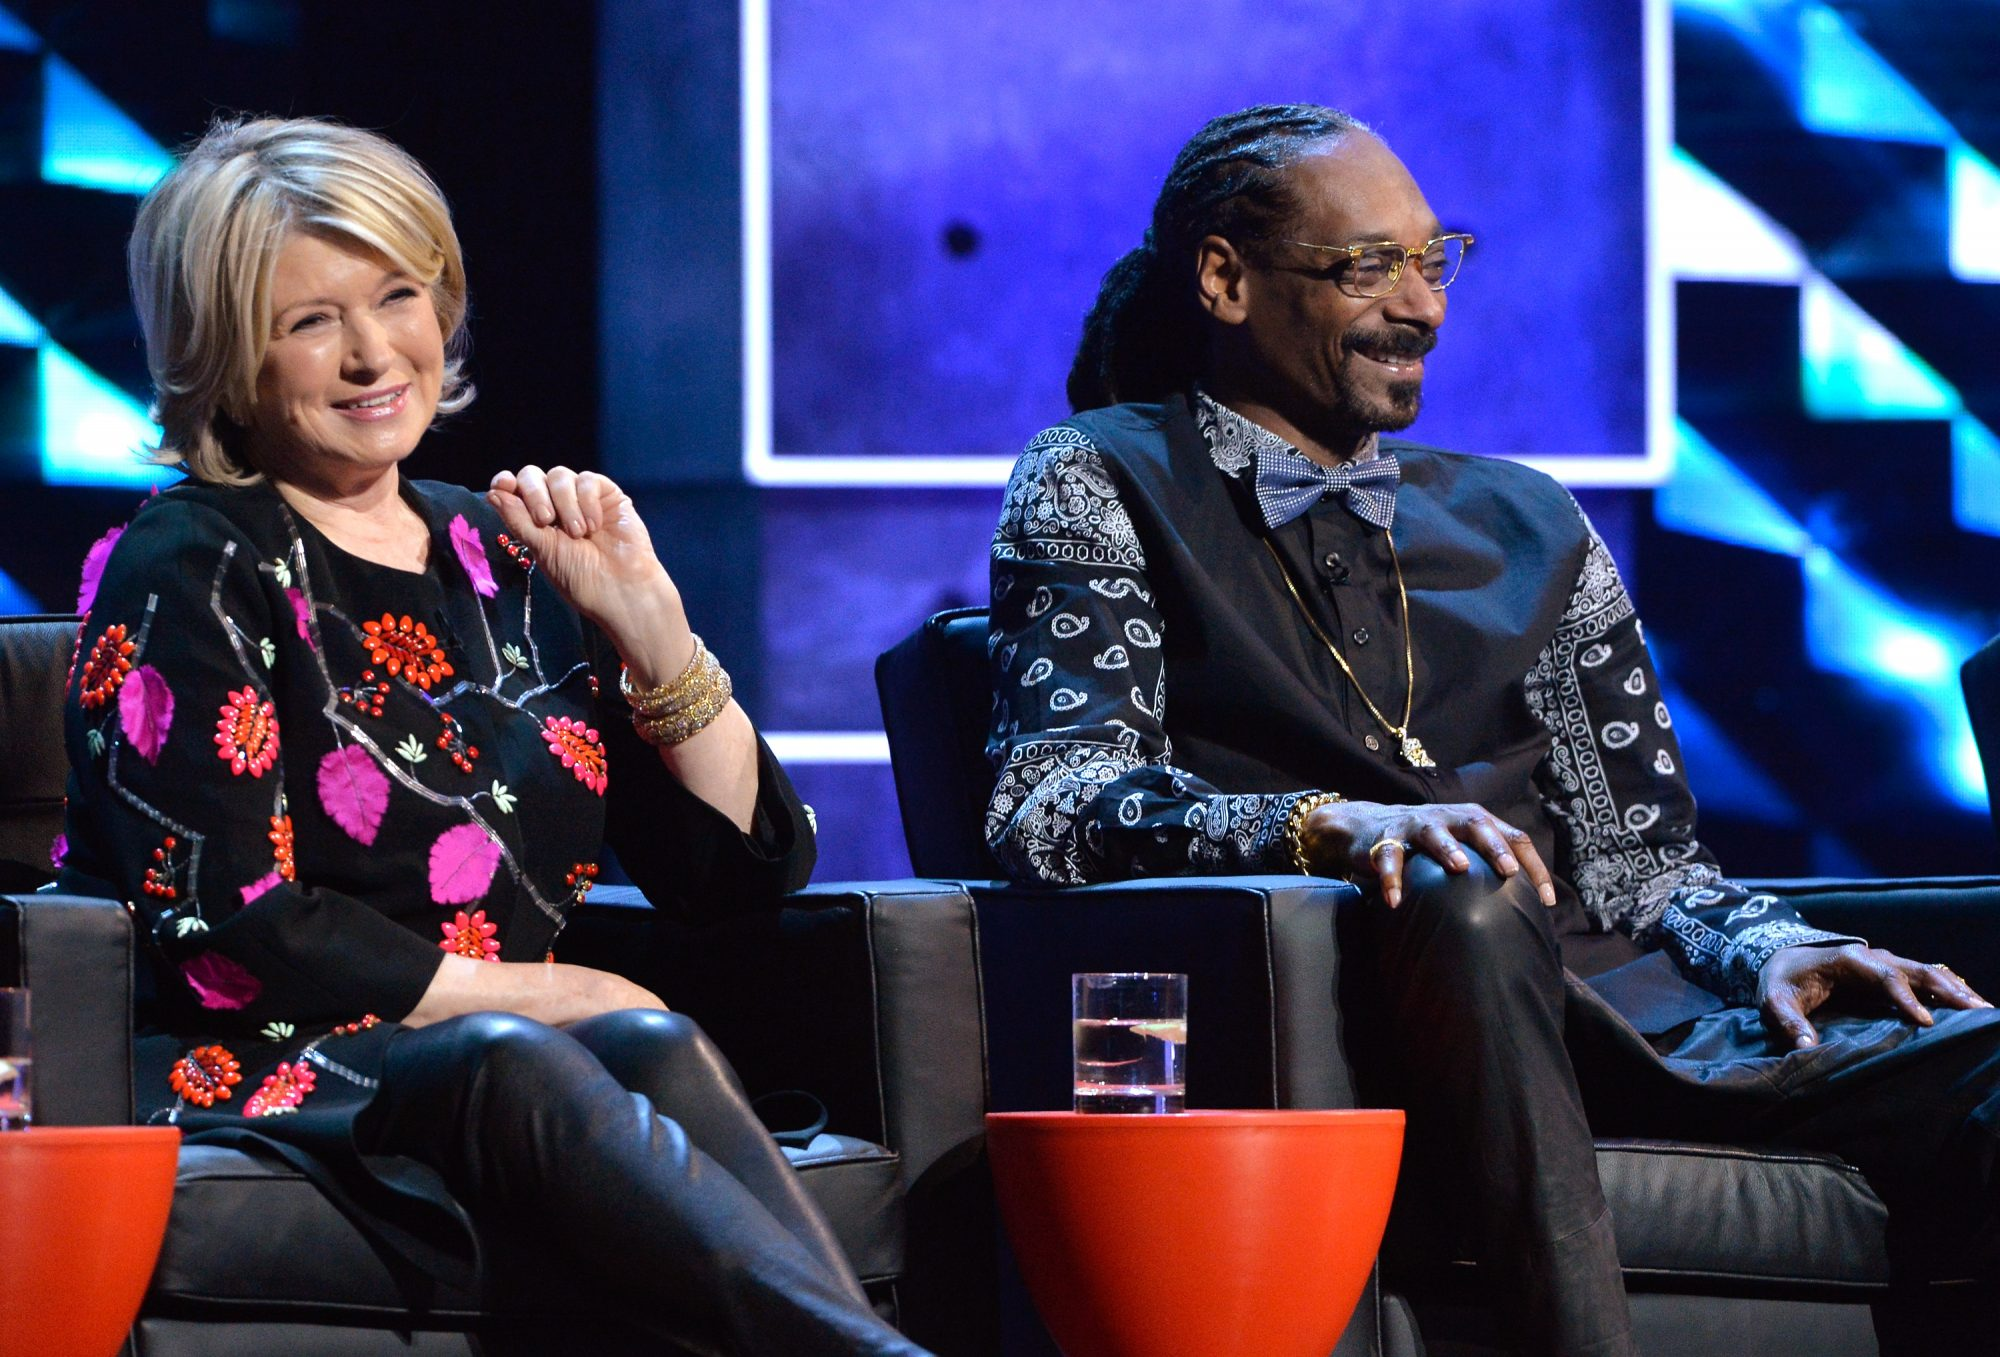 martha stewart and snoop dogg comedy central justin bieber roast